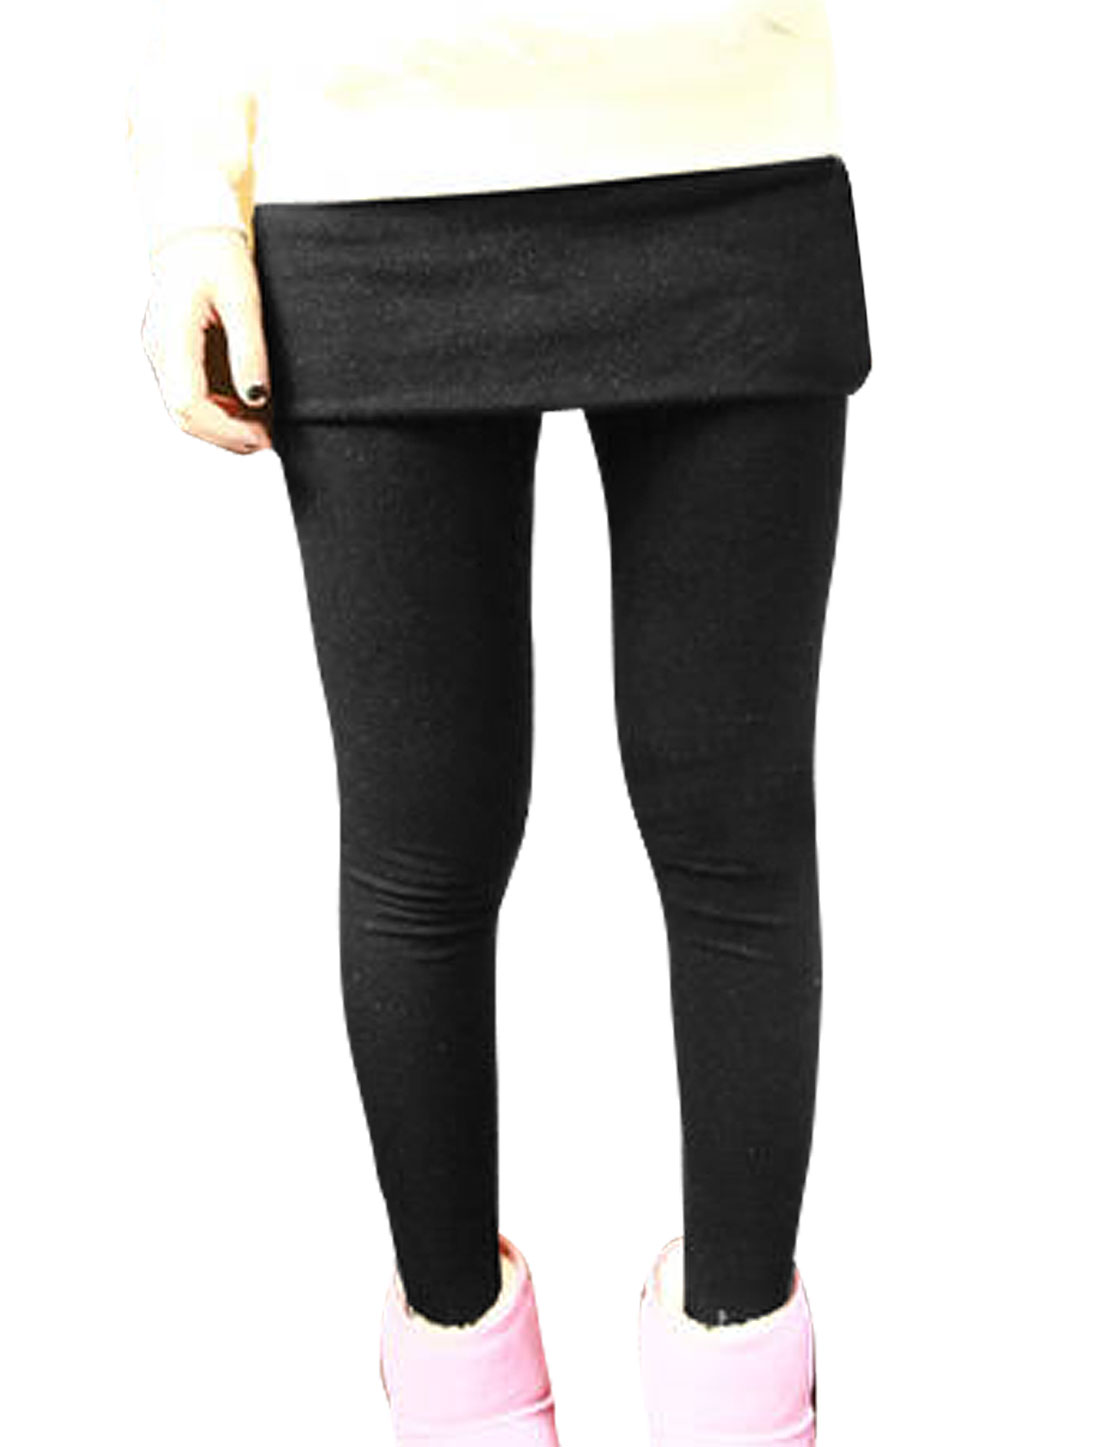 Women Winter Black Warm Close-fitting Full Length Skirt Leggings XS